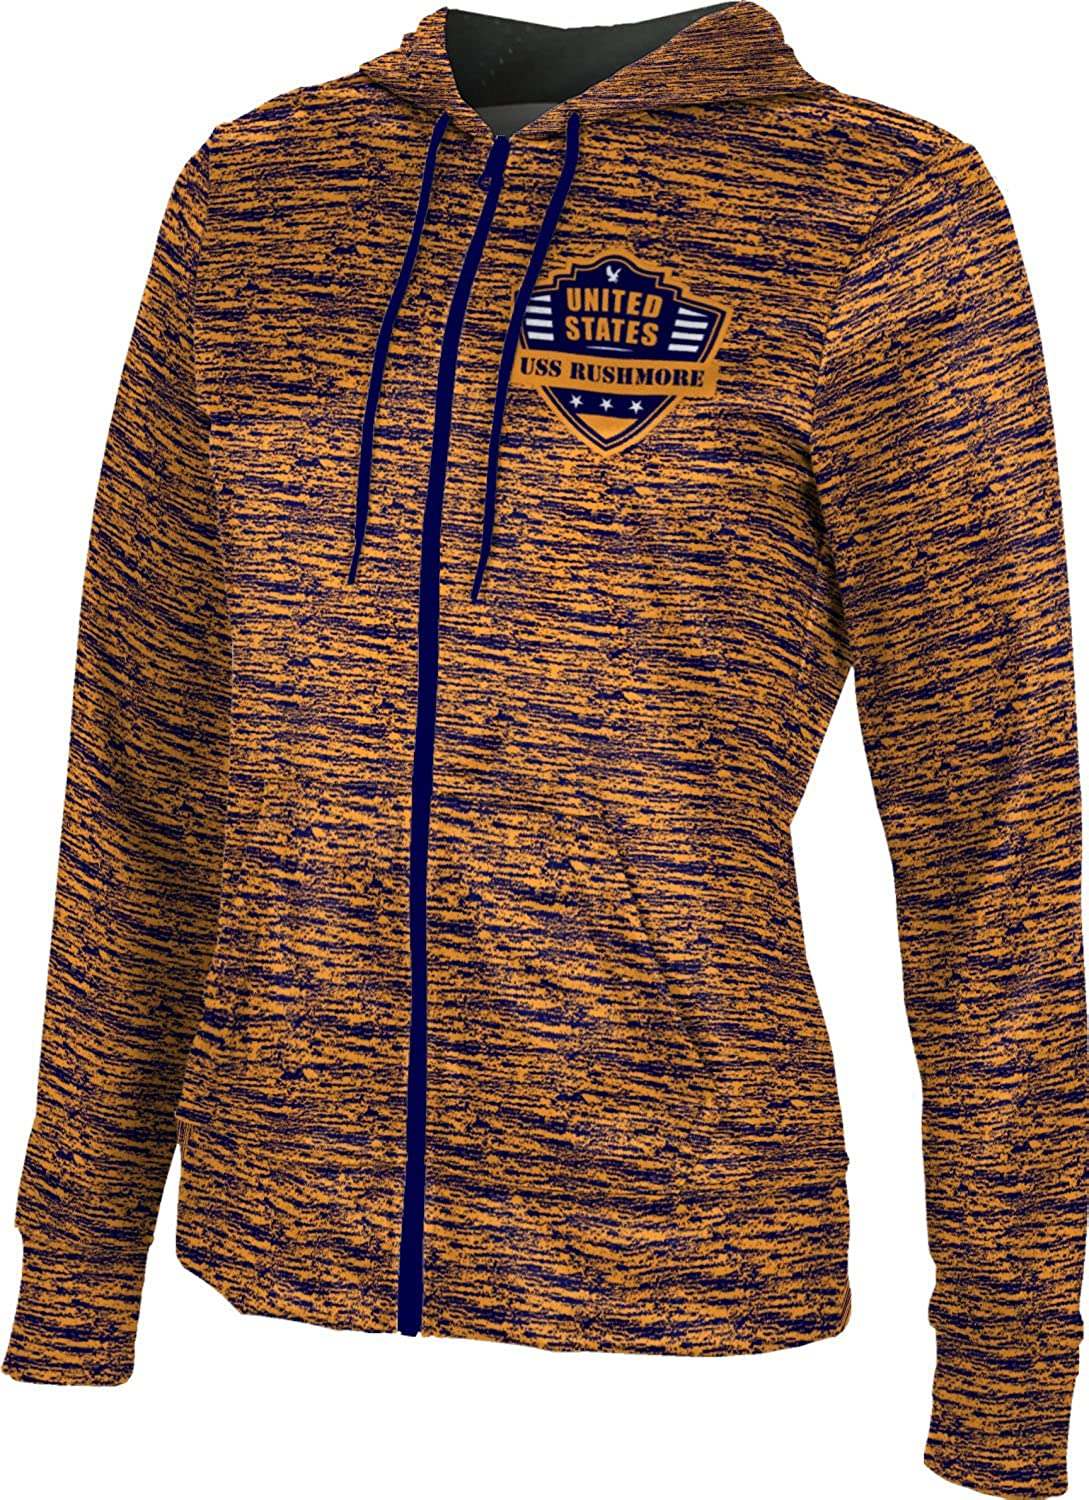 ProSphere Women's USS Rushmore Military Brushed Fullzip Hoodie